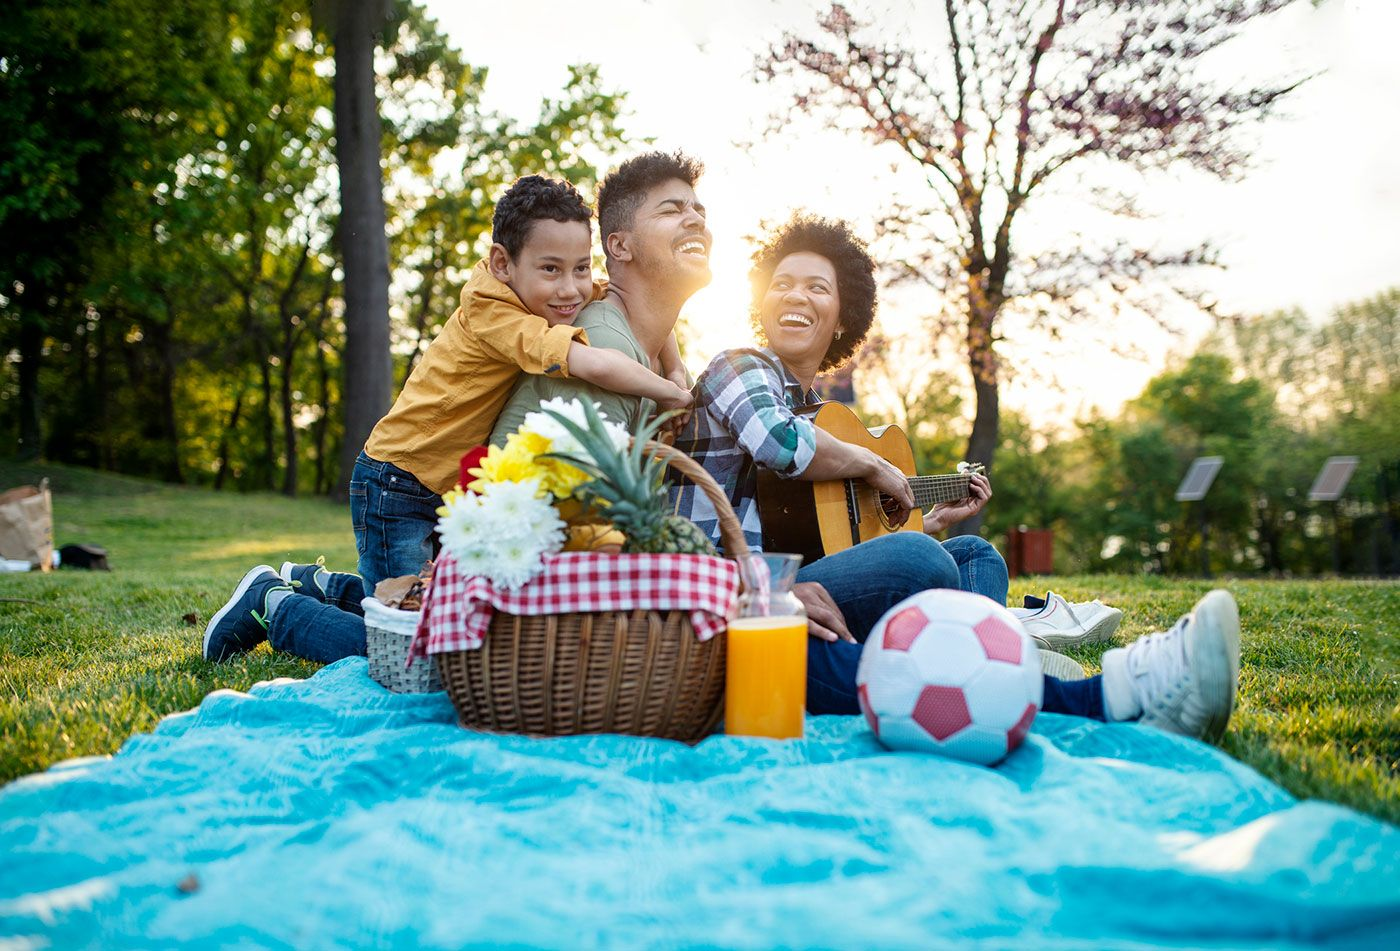 How to Plan an Unforgettable Father's Day